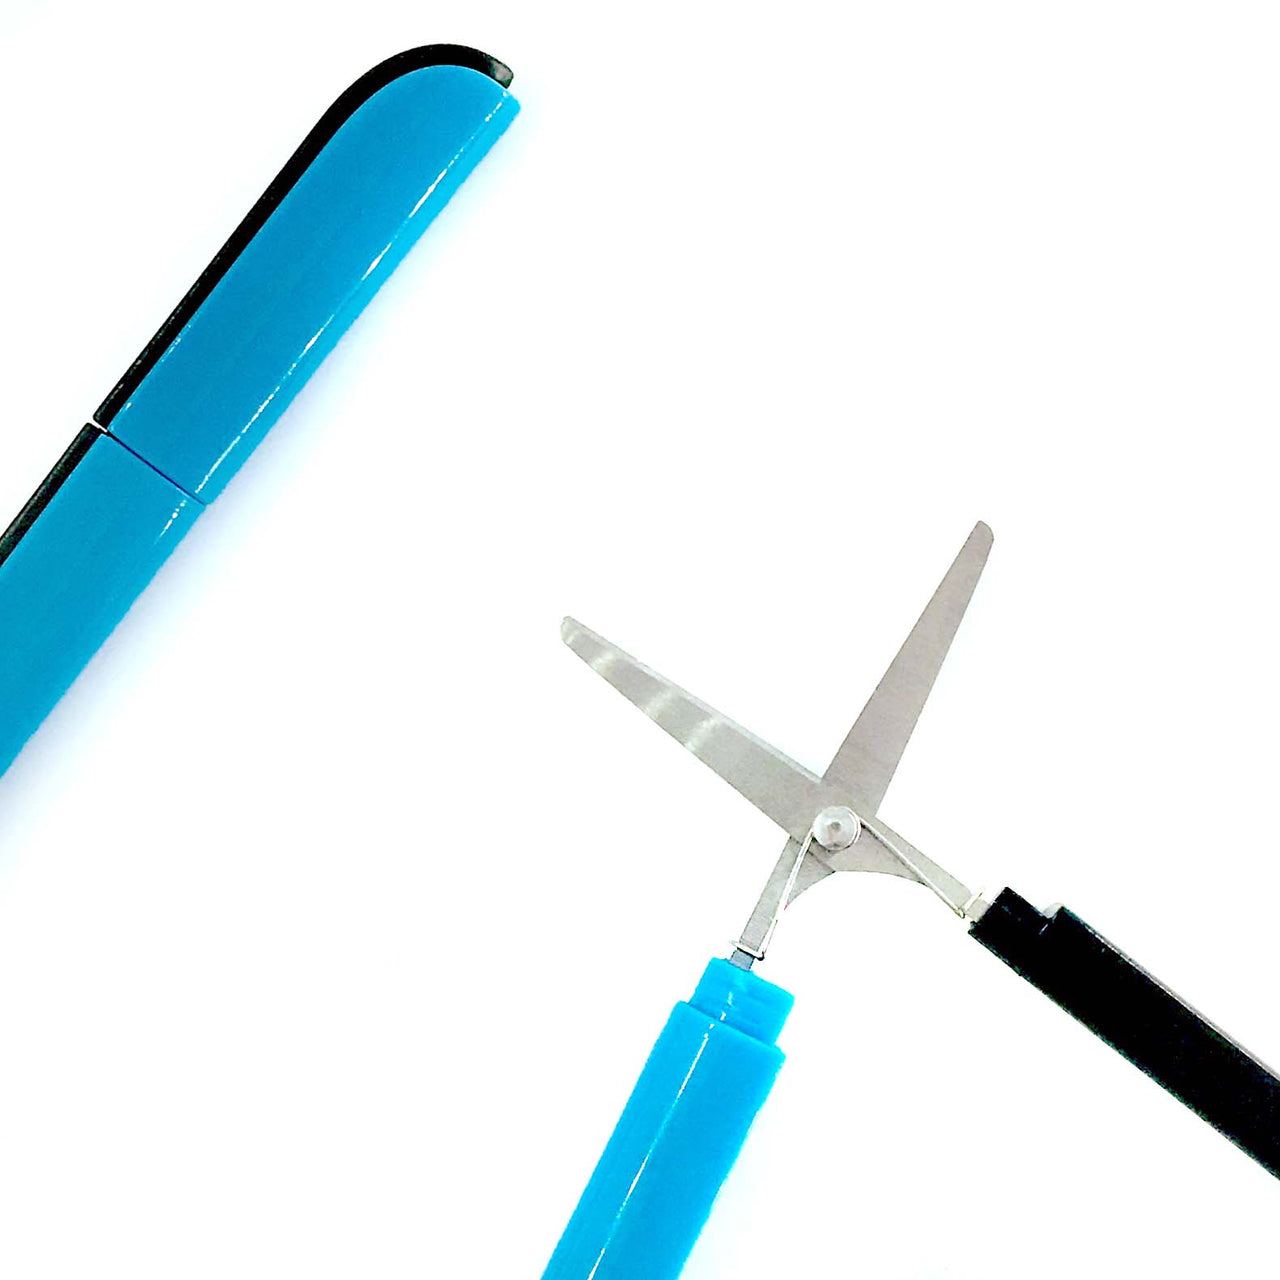 Collapsible Sewing Scissors Blue